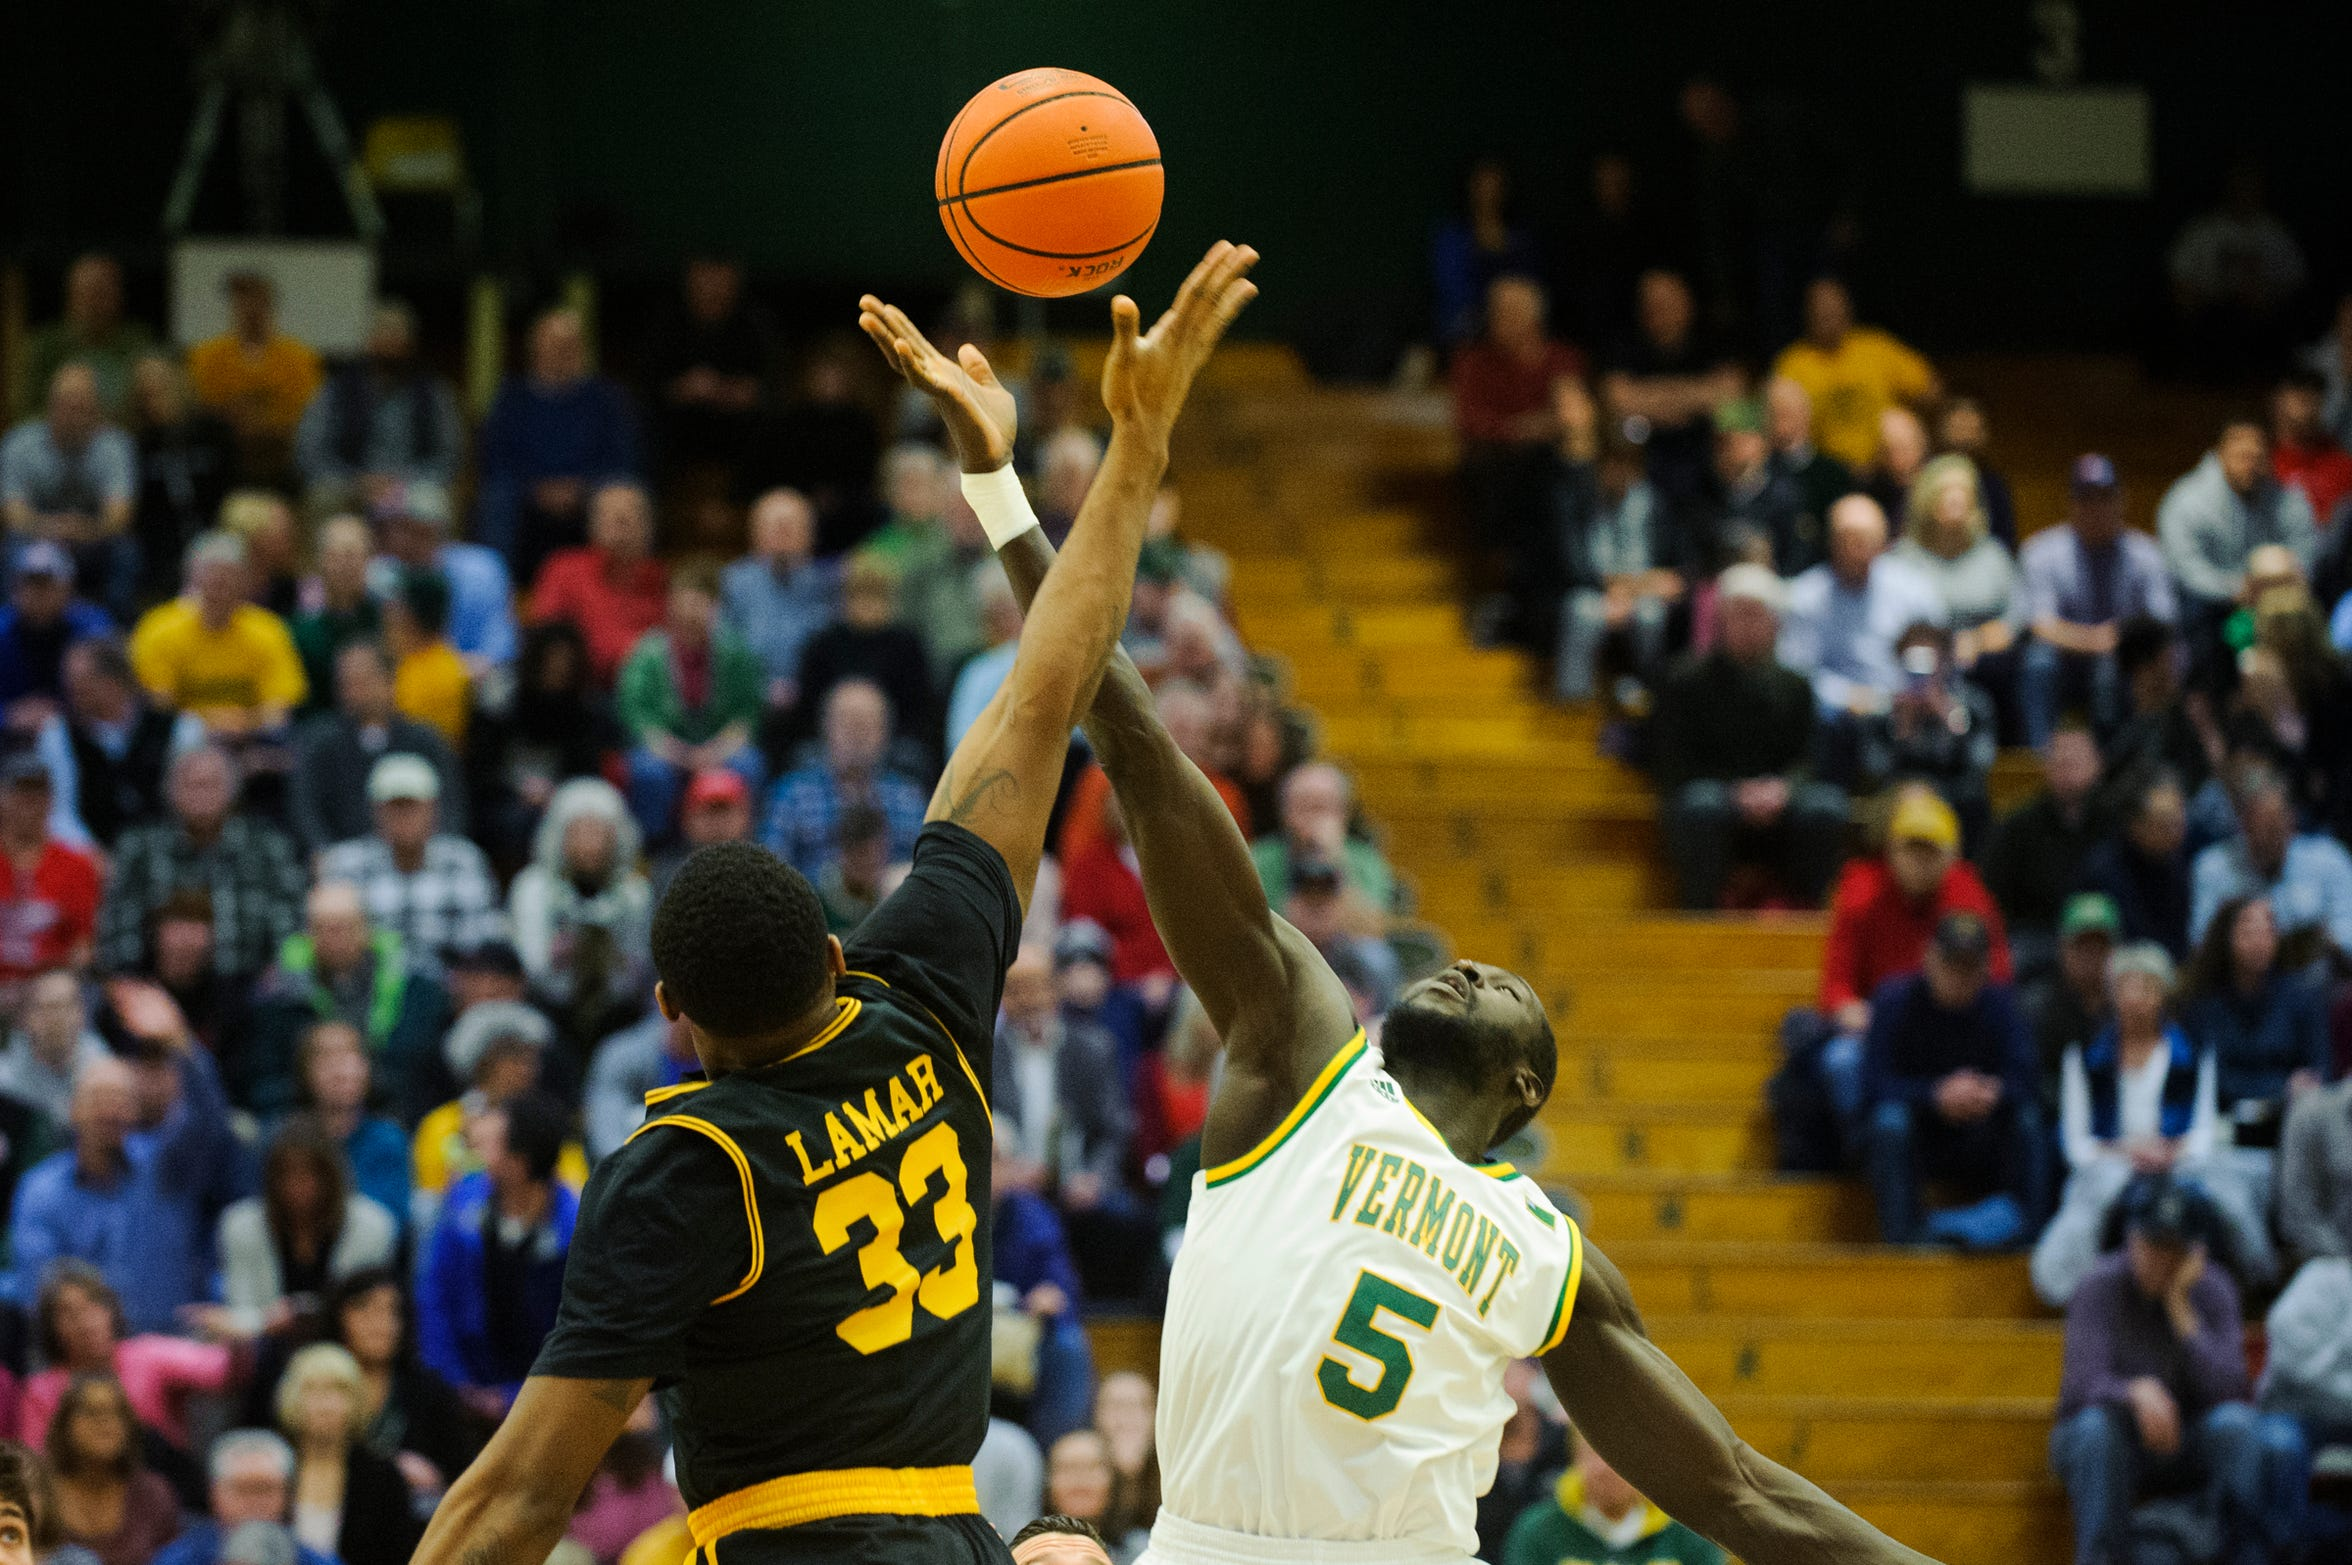 Vermont forward Samuel Dingba (5) and UMBC's Arkel Lamar (33) battle for the opening tip off during the men's basketball game between the UMBC Retrievers and the Vermont Catamounts at Patrick Gym on Wednesday night January 23, 2019 in Burlington, Vermont.